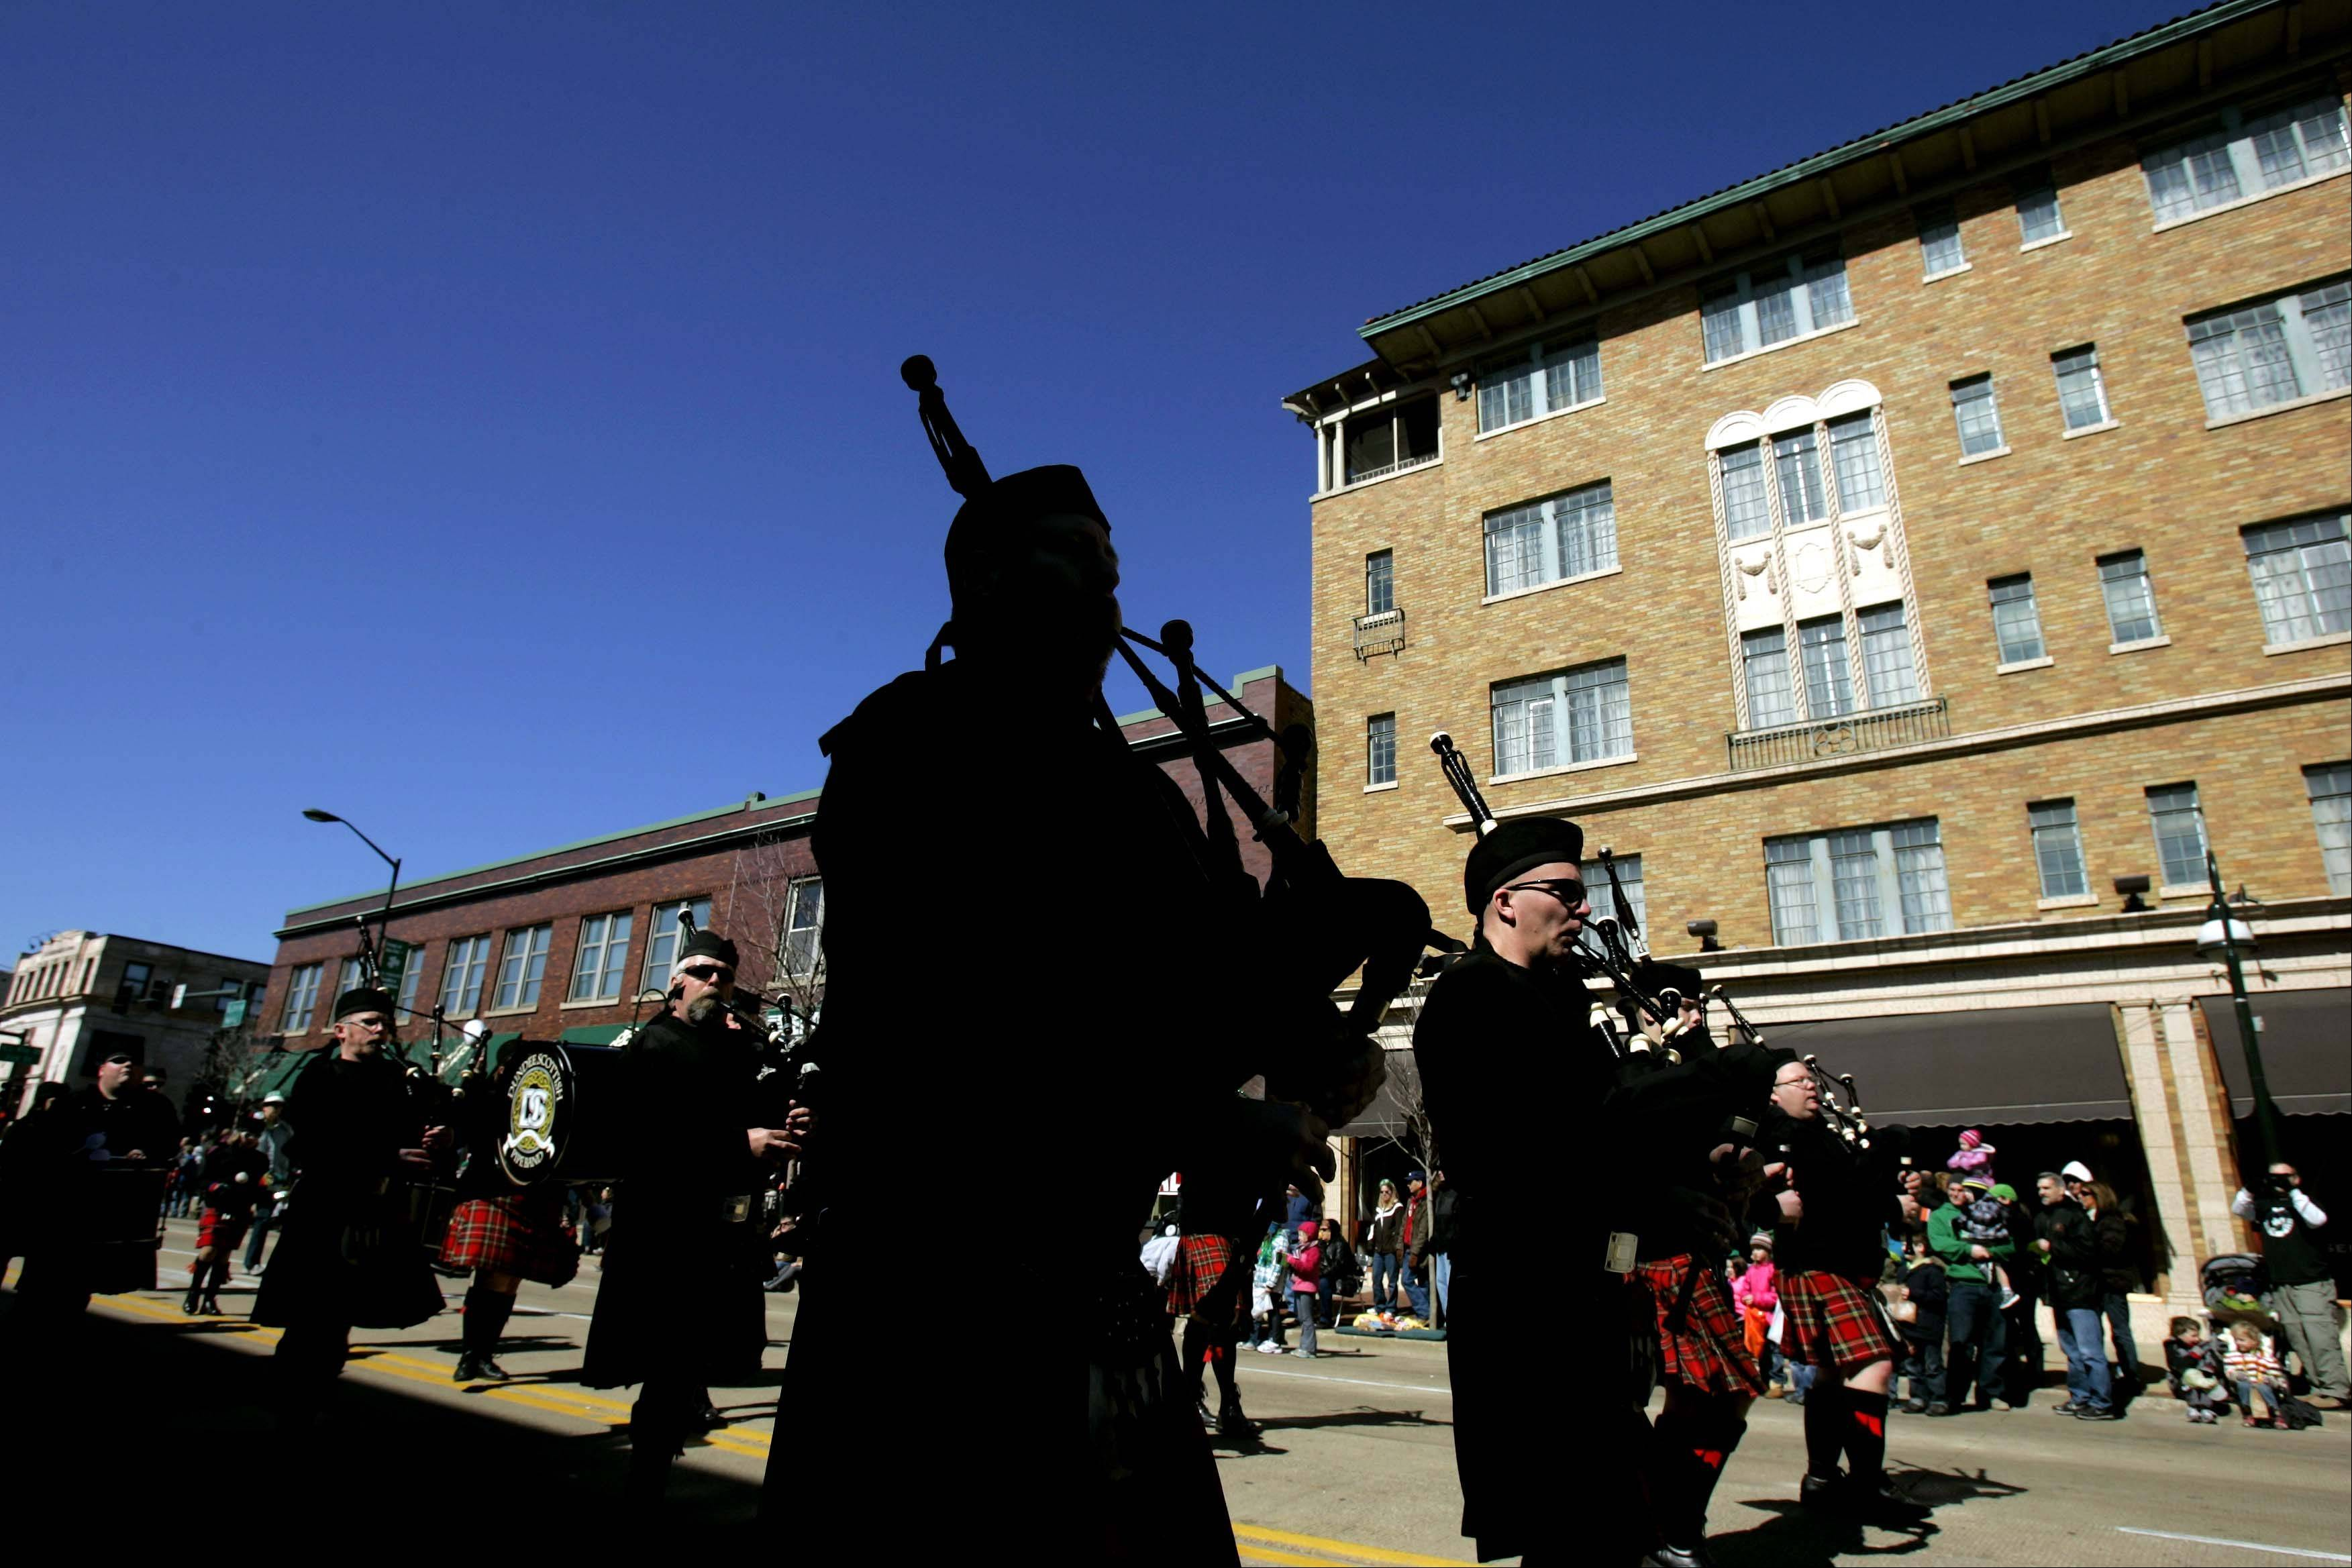 The Dundee Scottish Pipe Band passes in front of the Baker Hotel during the 2012 St. Patrick's Day Parade. The entry deadline for this year's parade is Wednesday, Feb. 20.